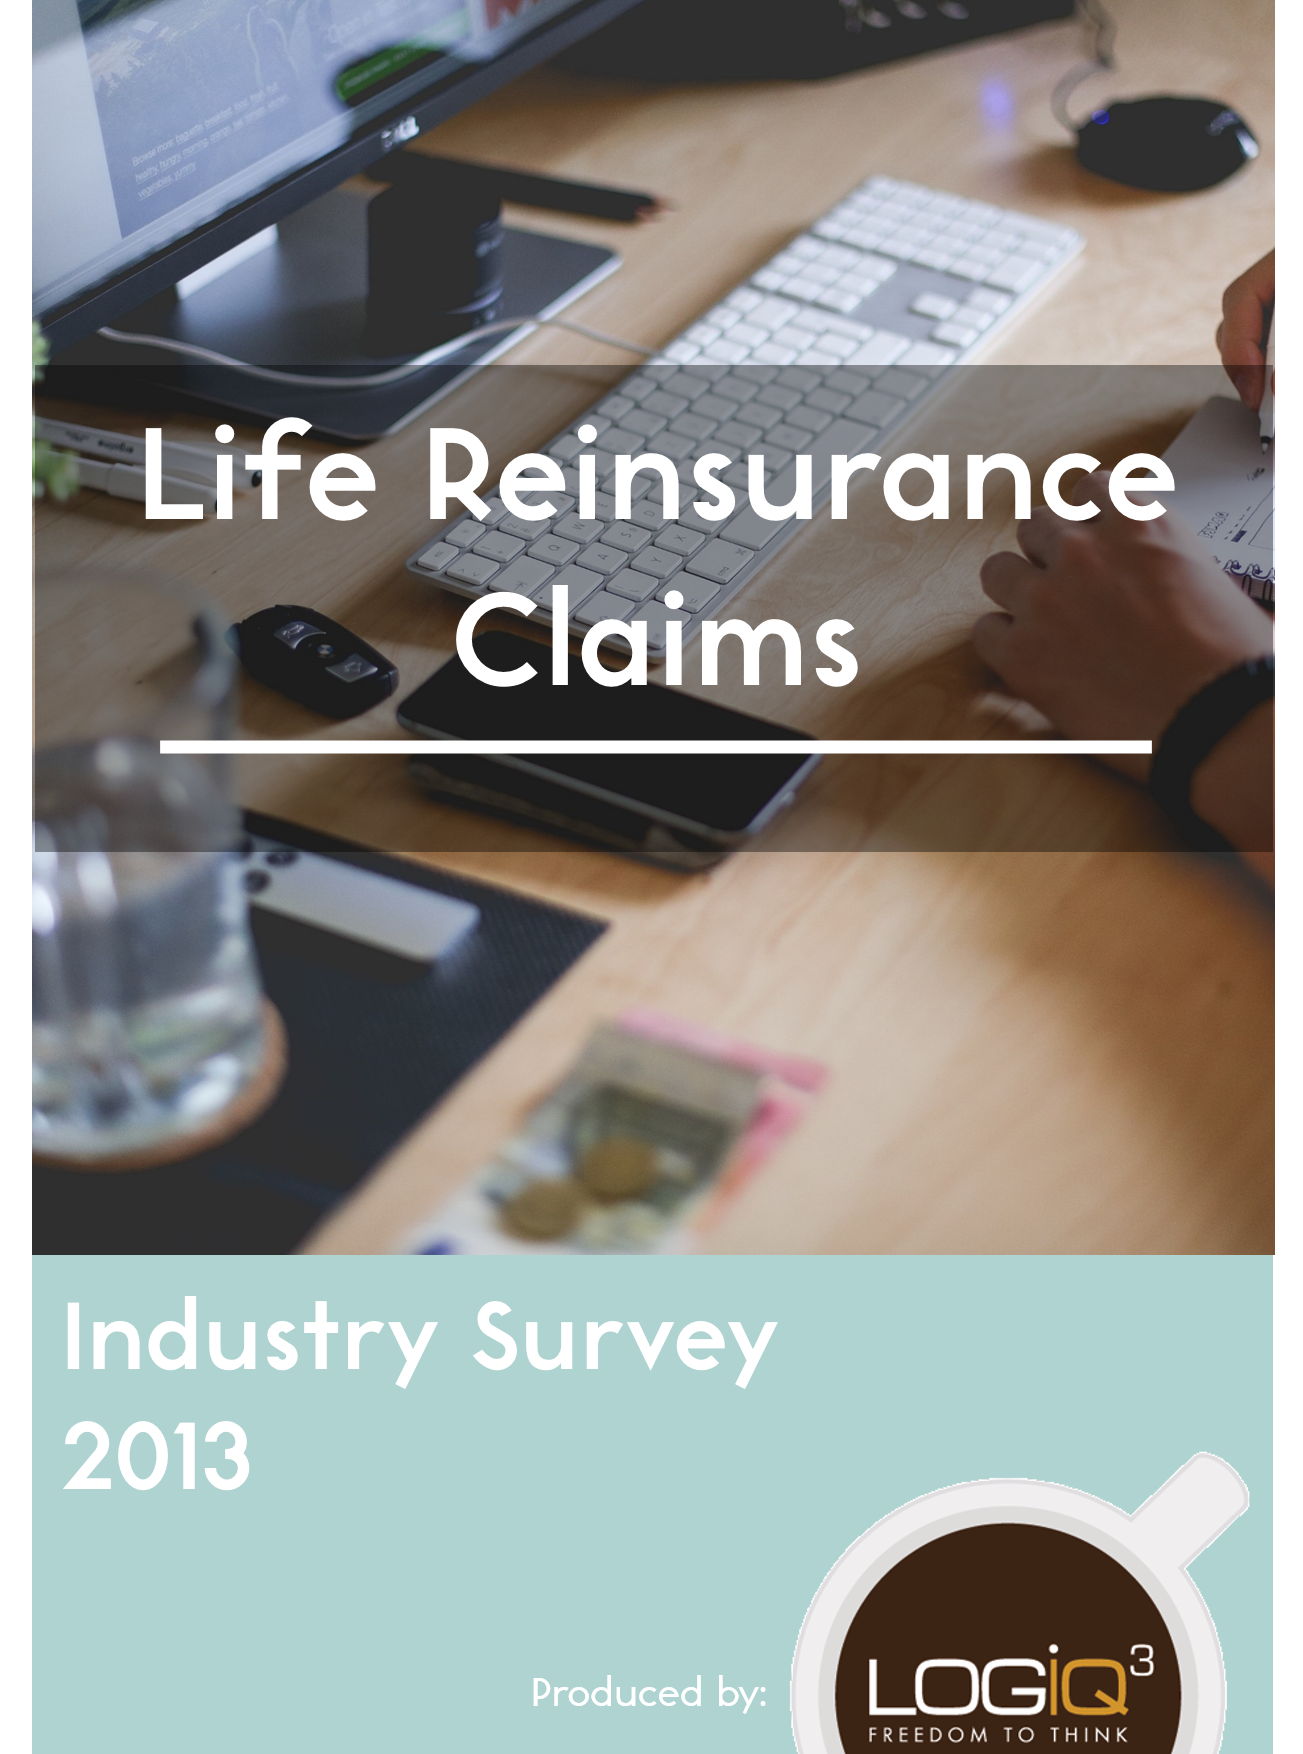 Life-Reinsurance-Claims-Industry-Survey-download.png